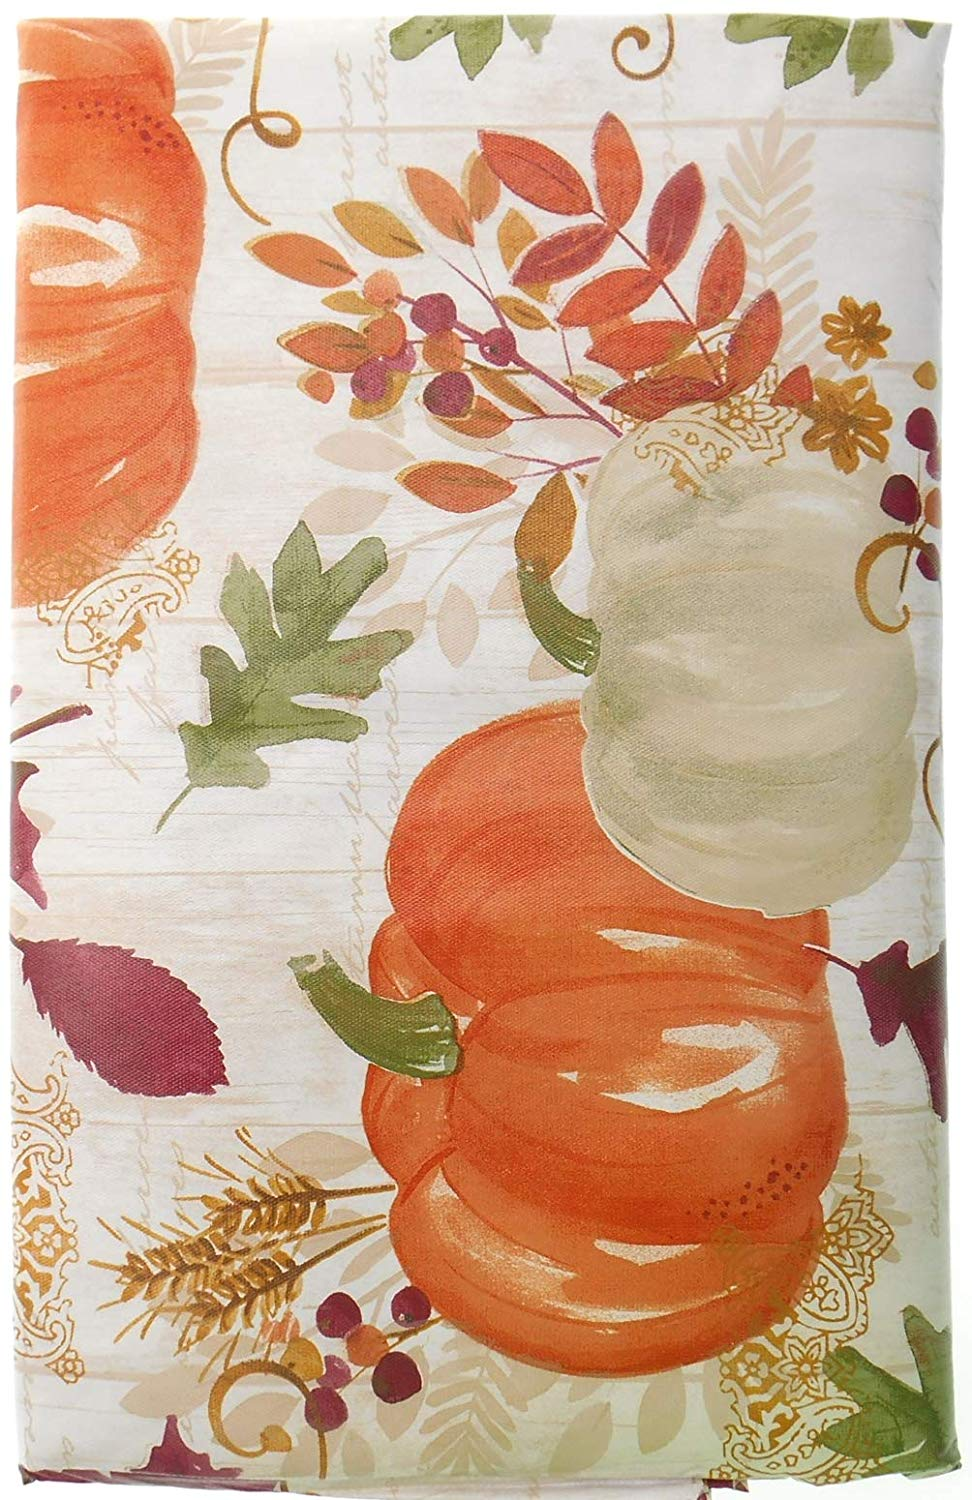 Pumpkins And Leaves On White Background Fall Vinyl Tablecloth Autumn With Flannel Backing